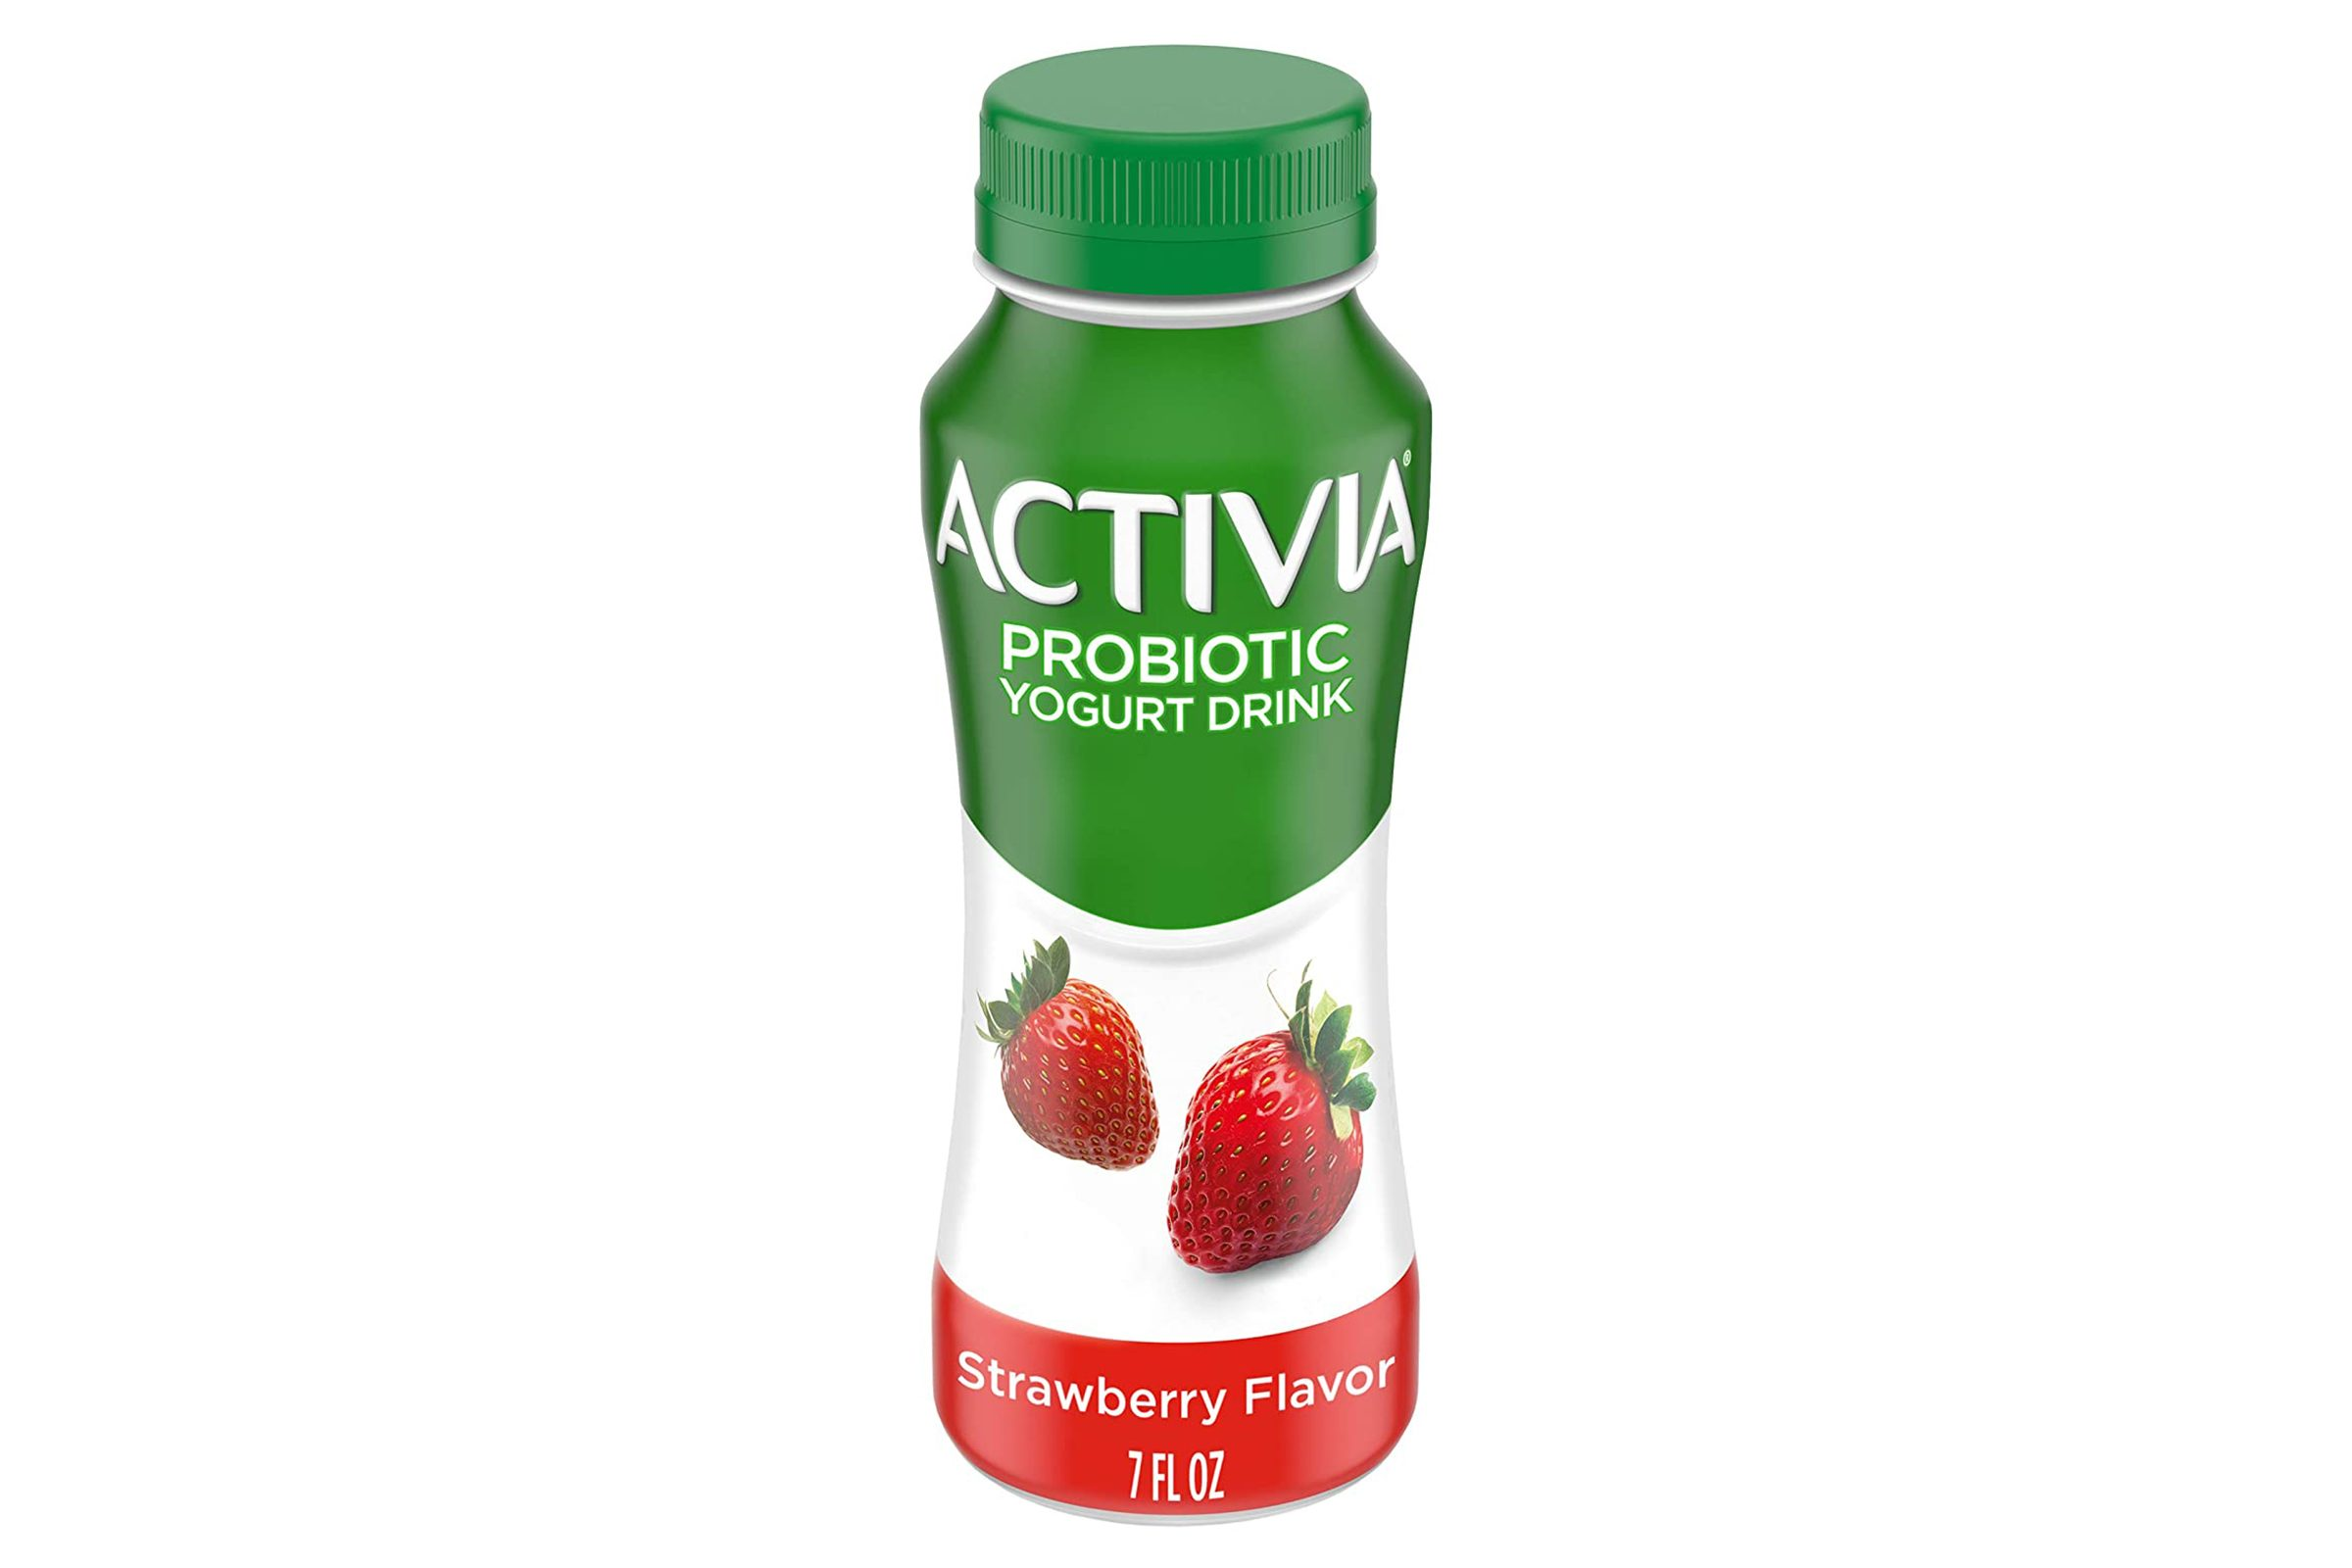 activia probiotic yogurt drink